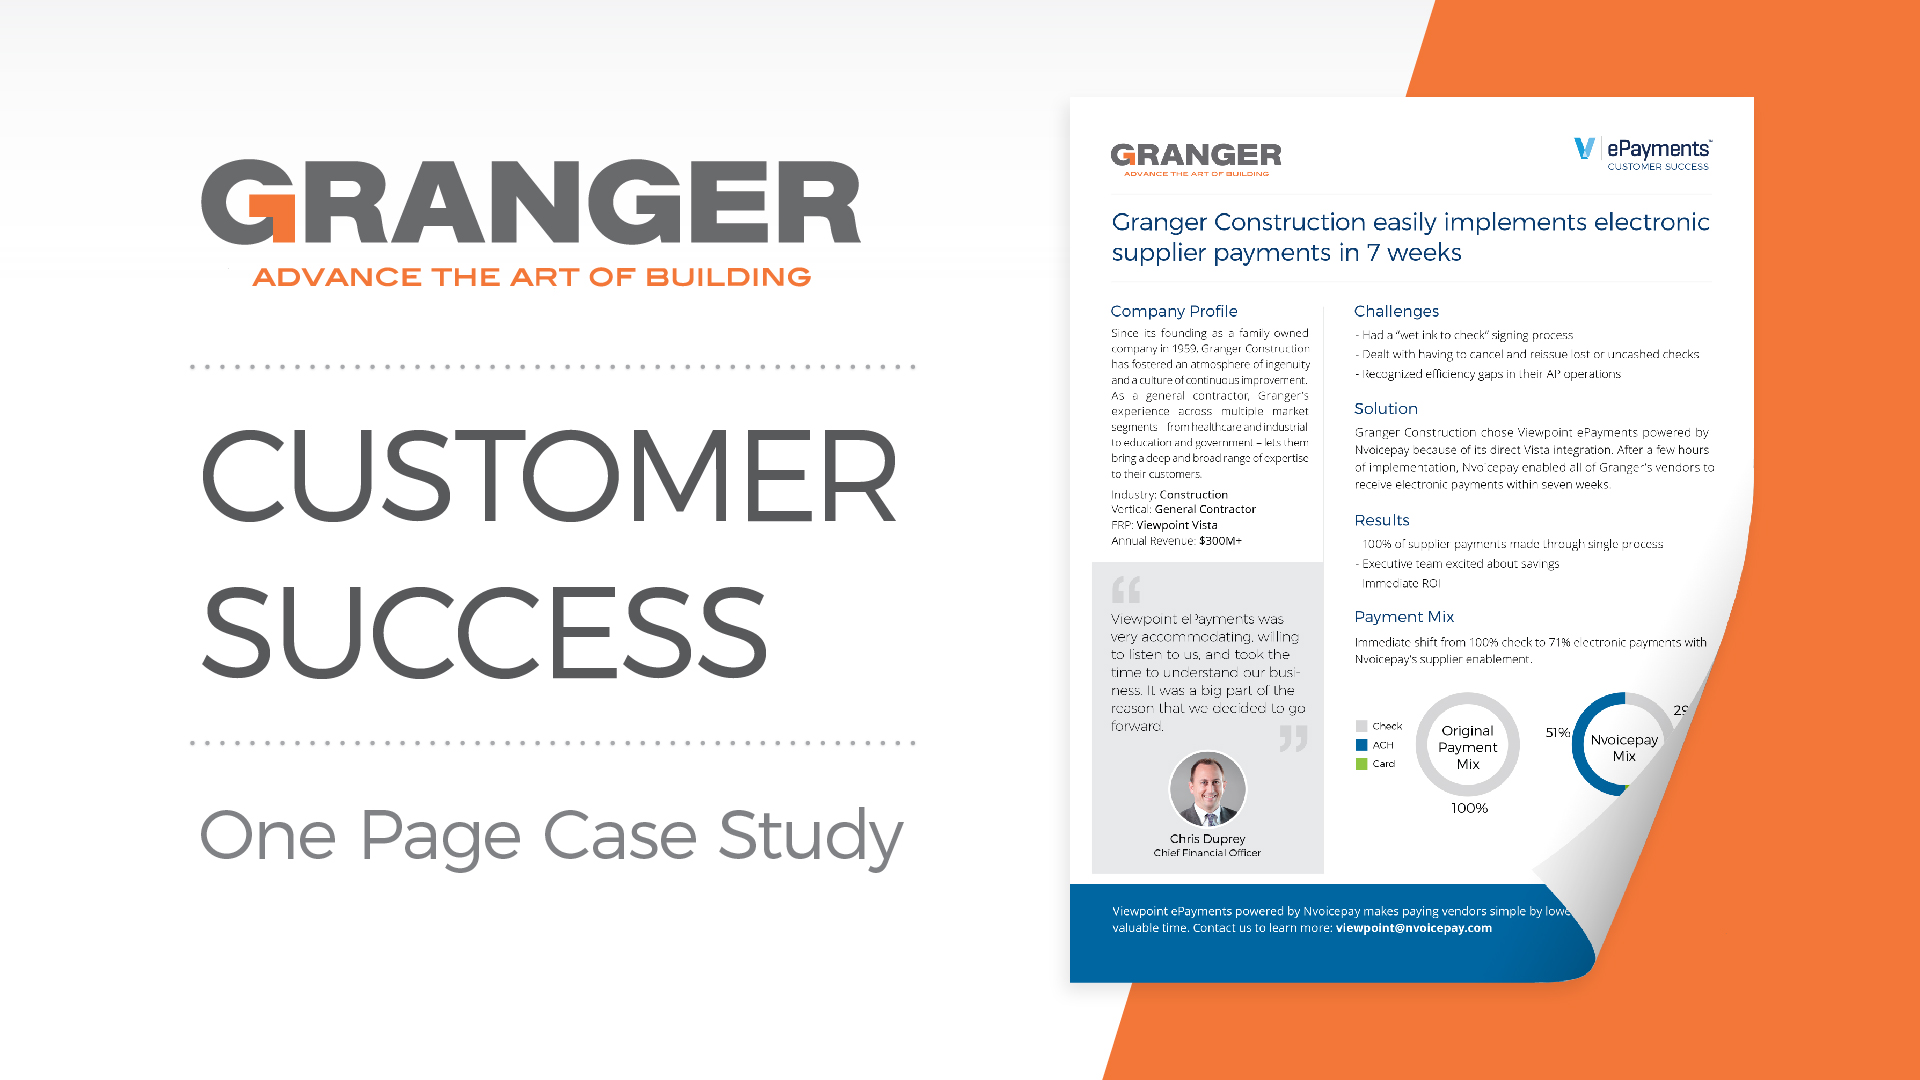 Customer Success: Granger Construction